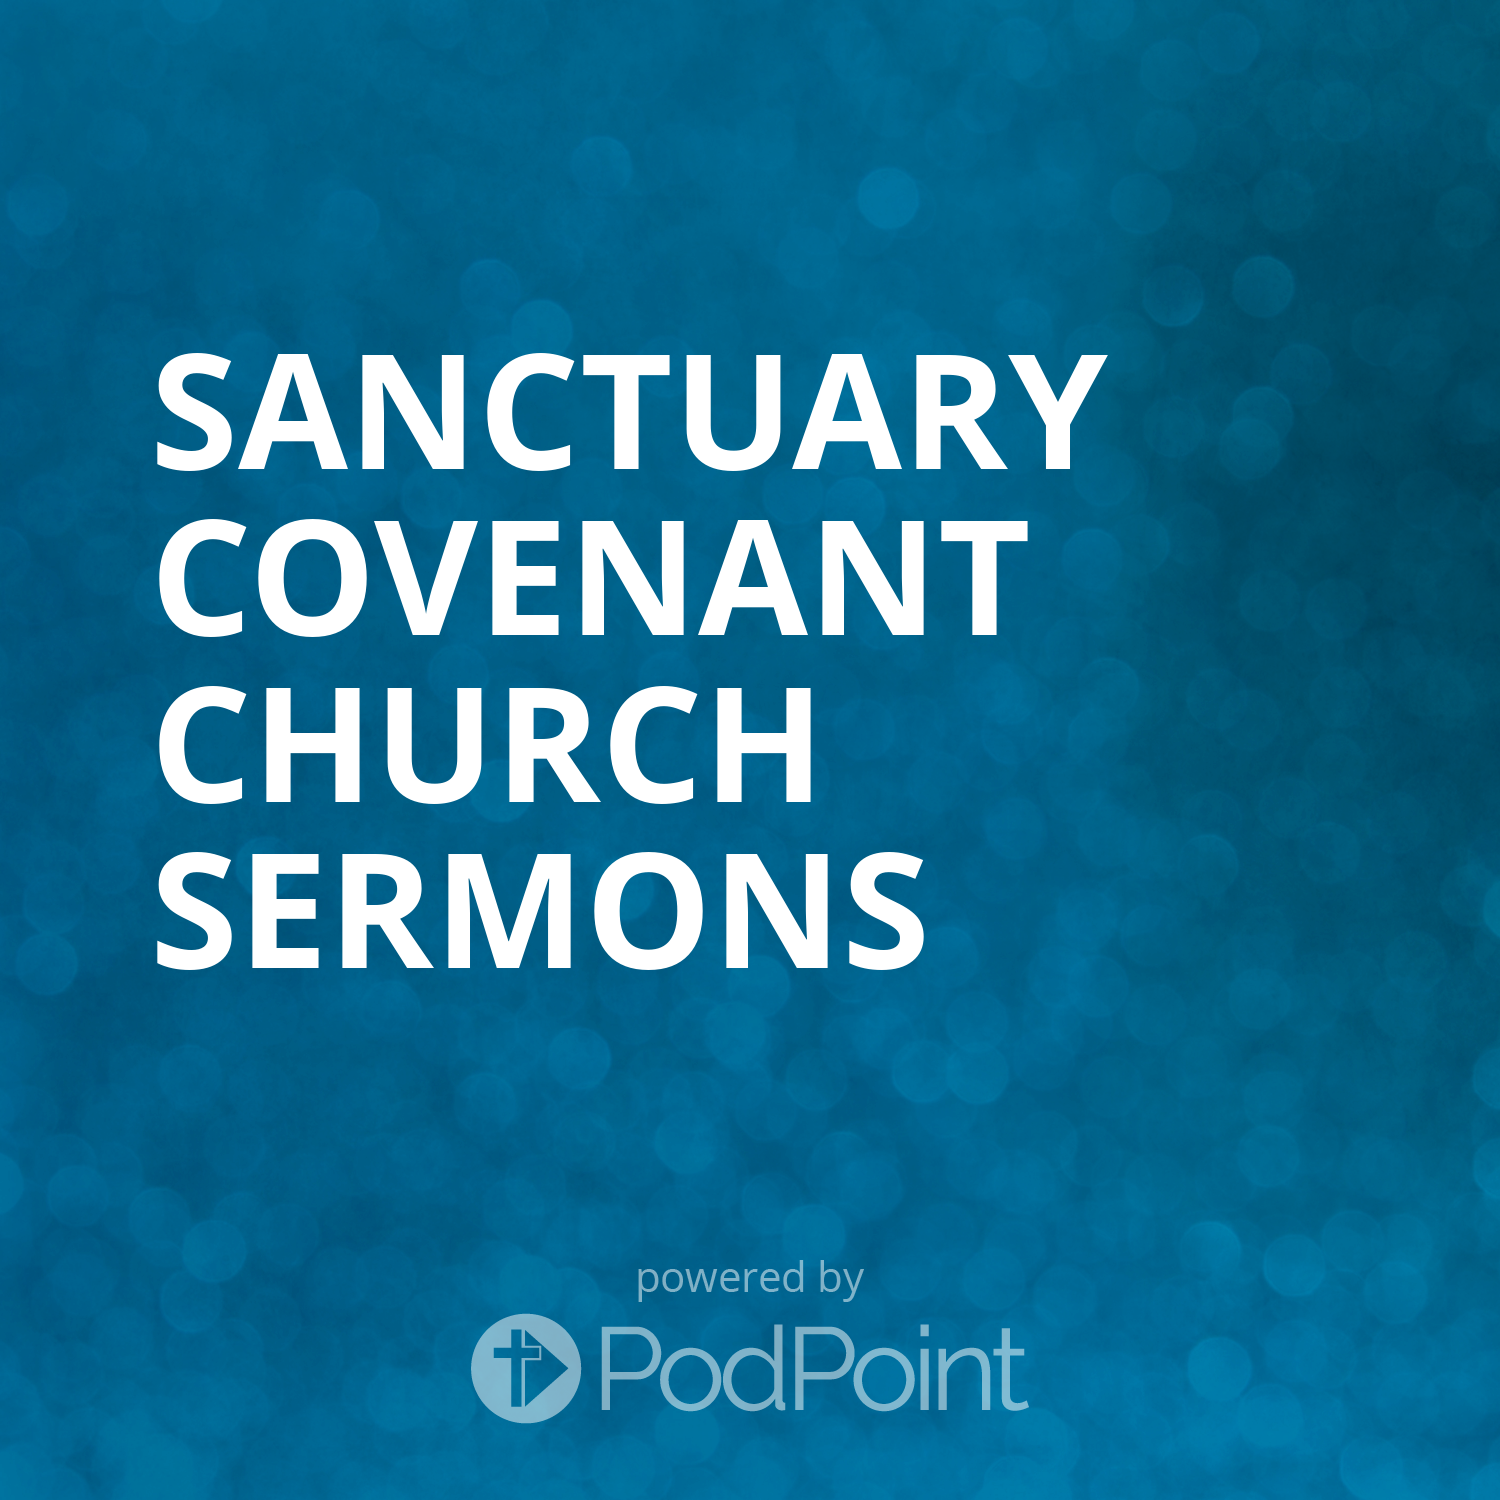 Sanctuary Covenant Church Sermons